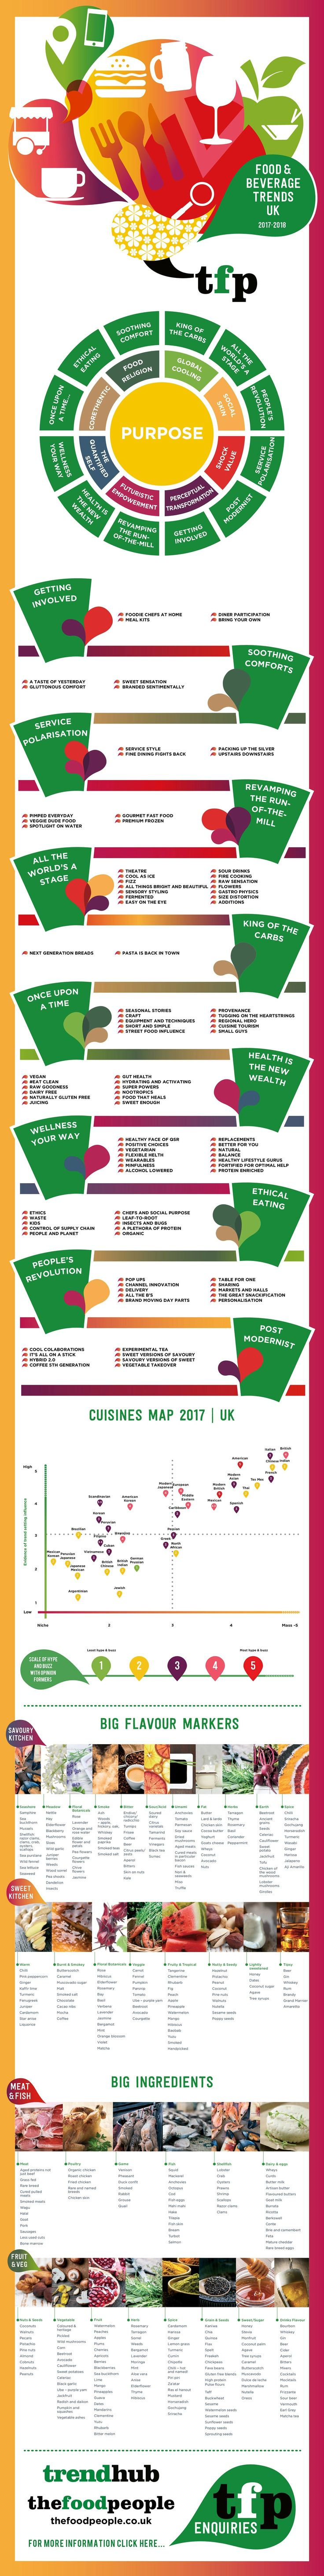 Infographic of Food and Beverage Trends 2017 - UK